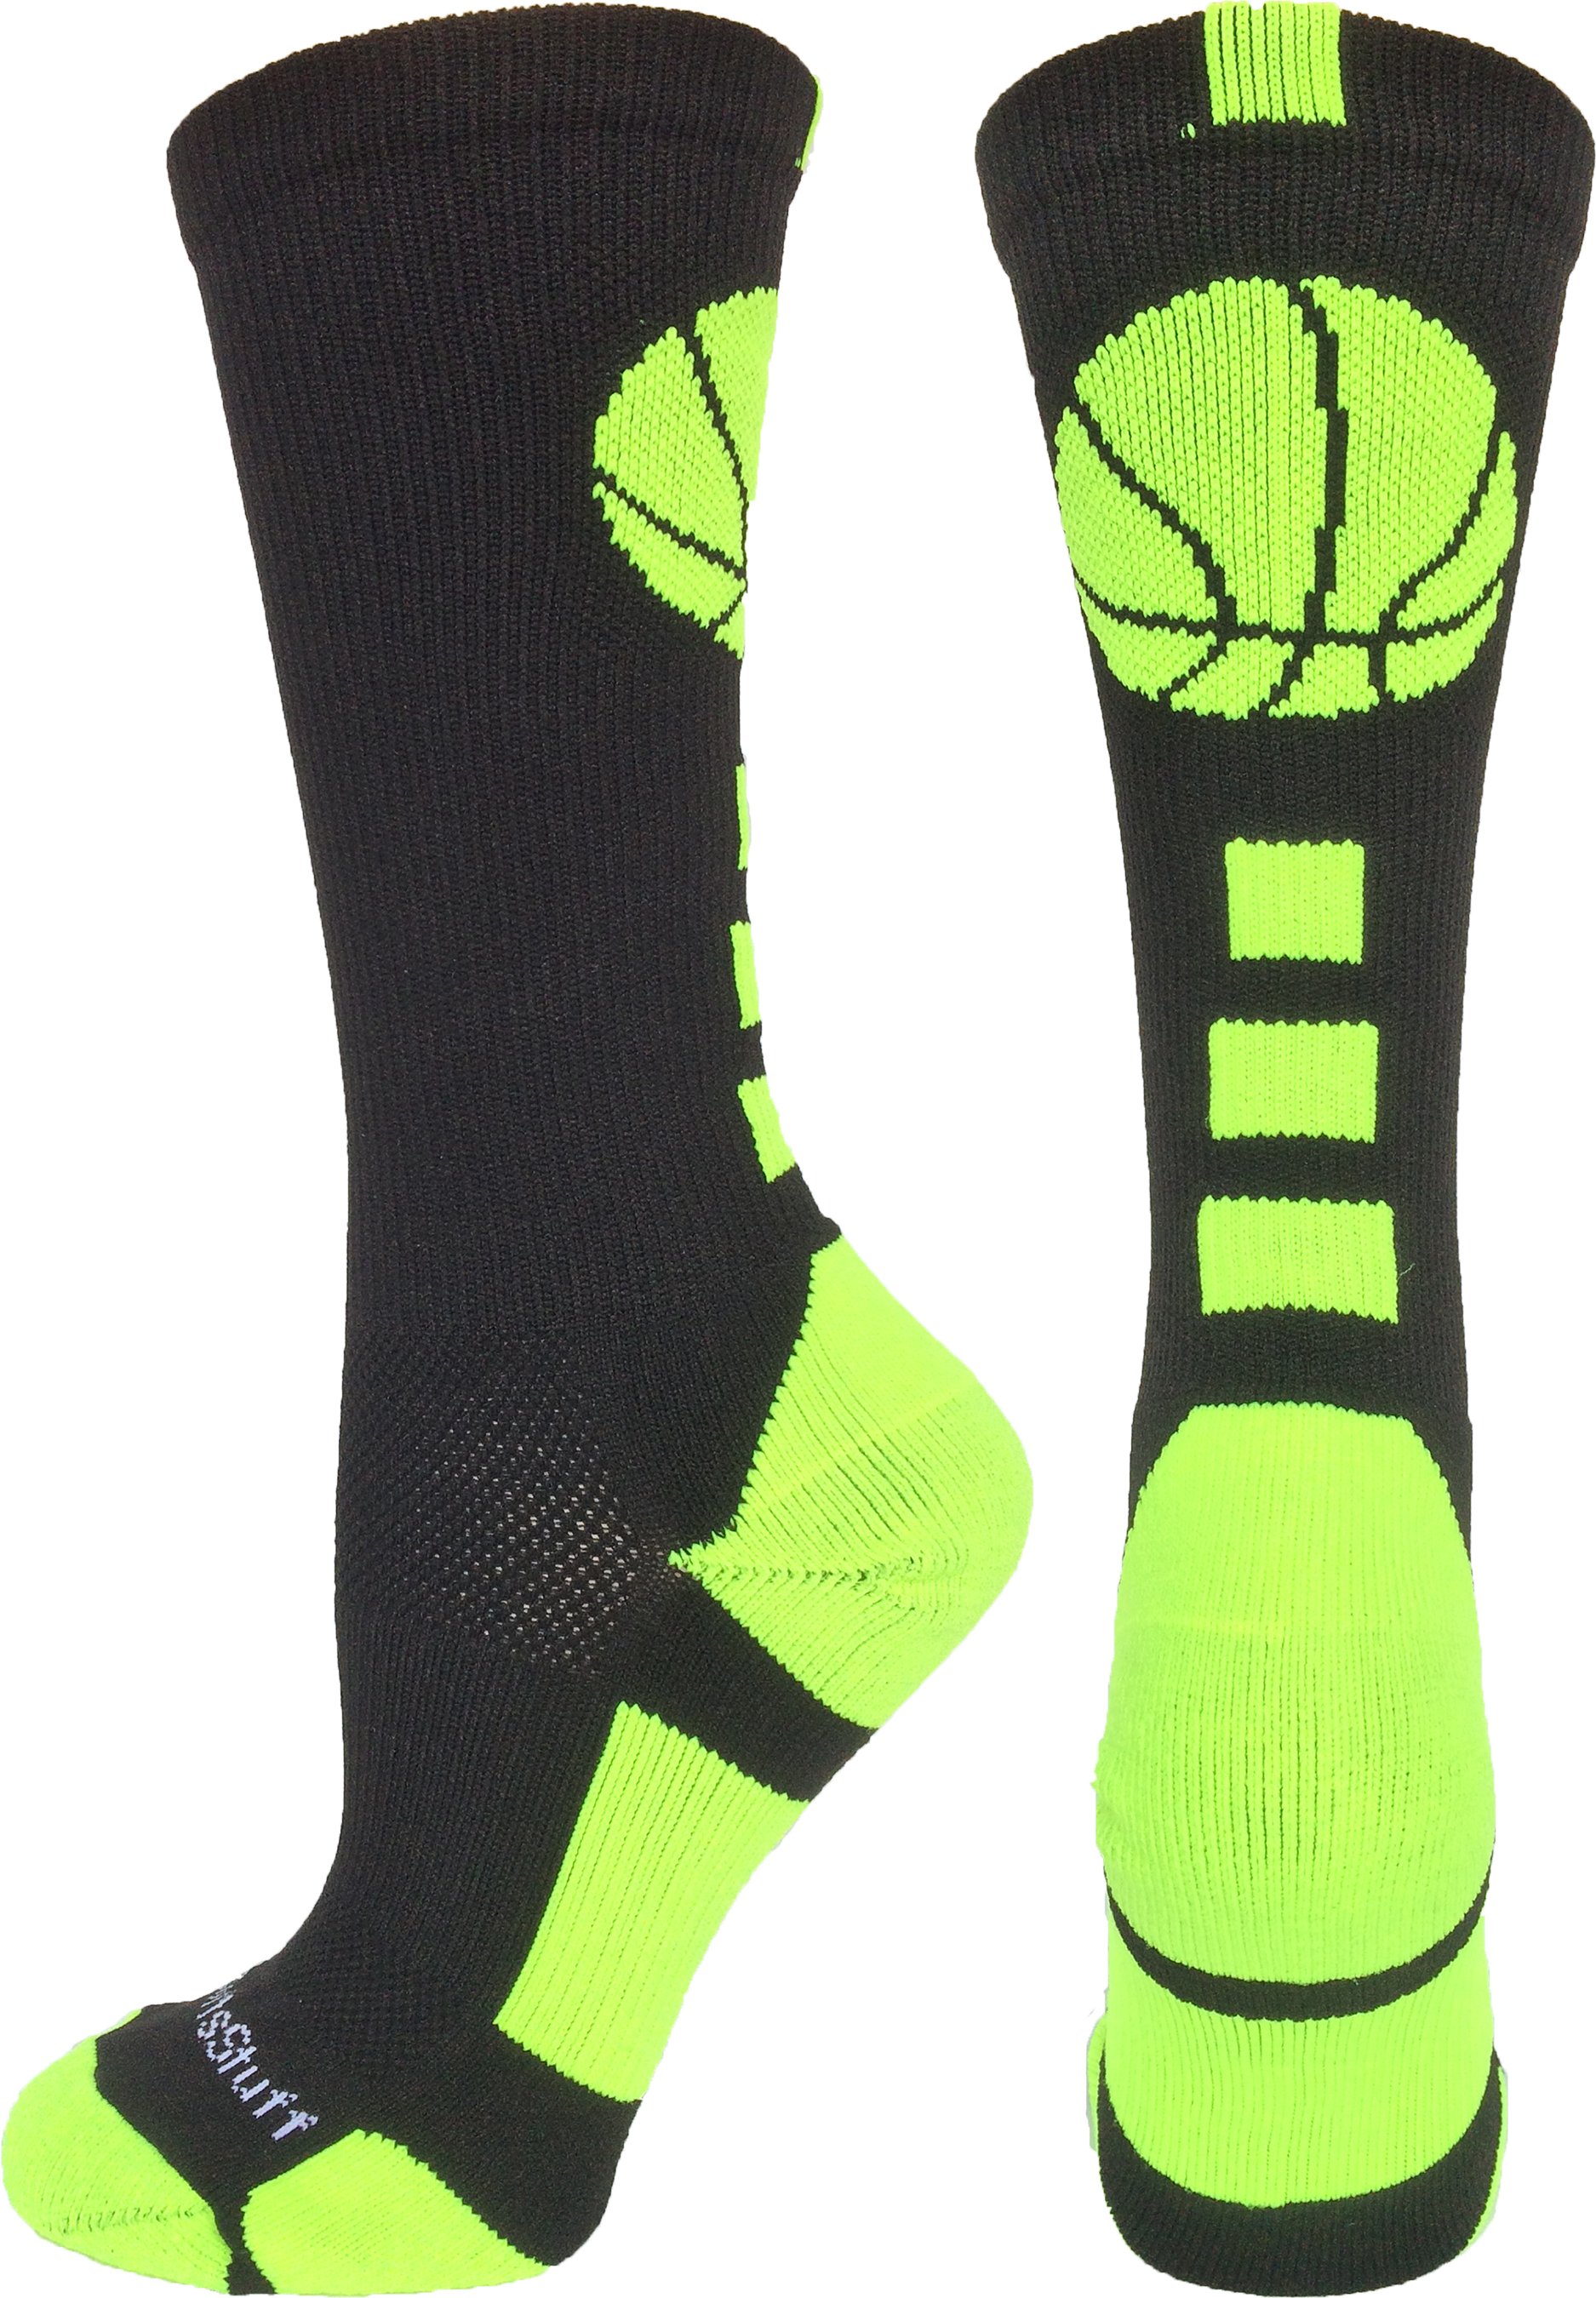 Basketball Logo Crew Socks (Royal/Gold, Large) - Royal/Gold,Large